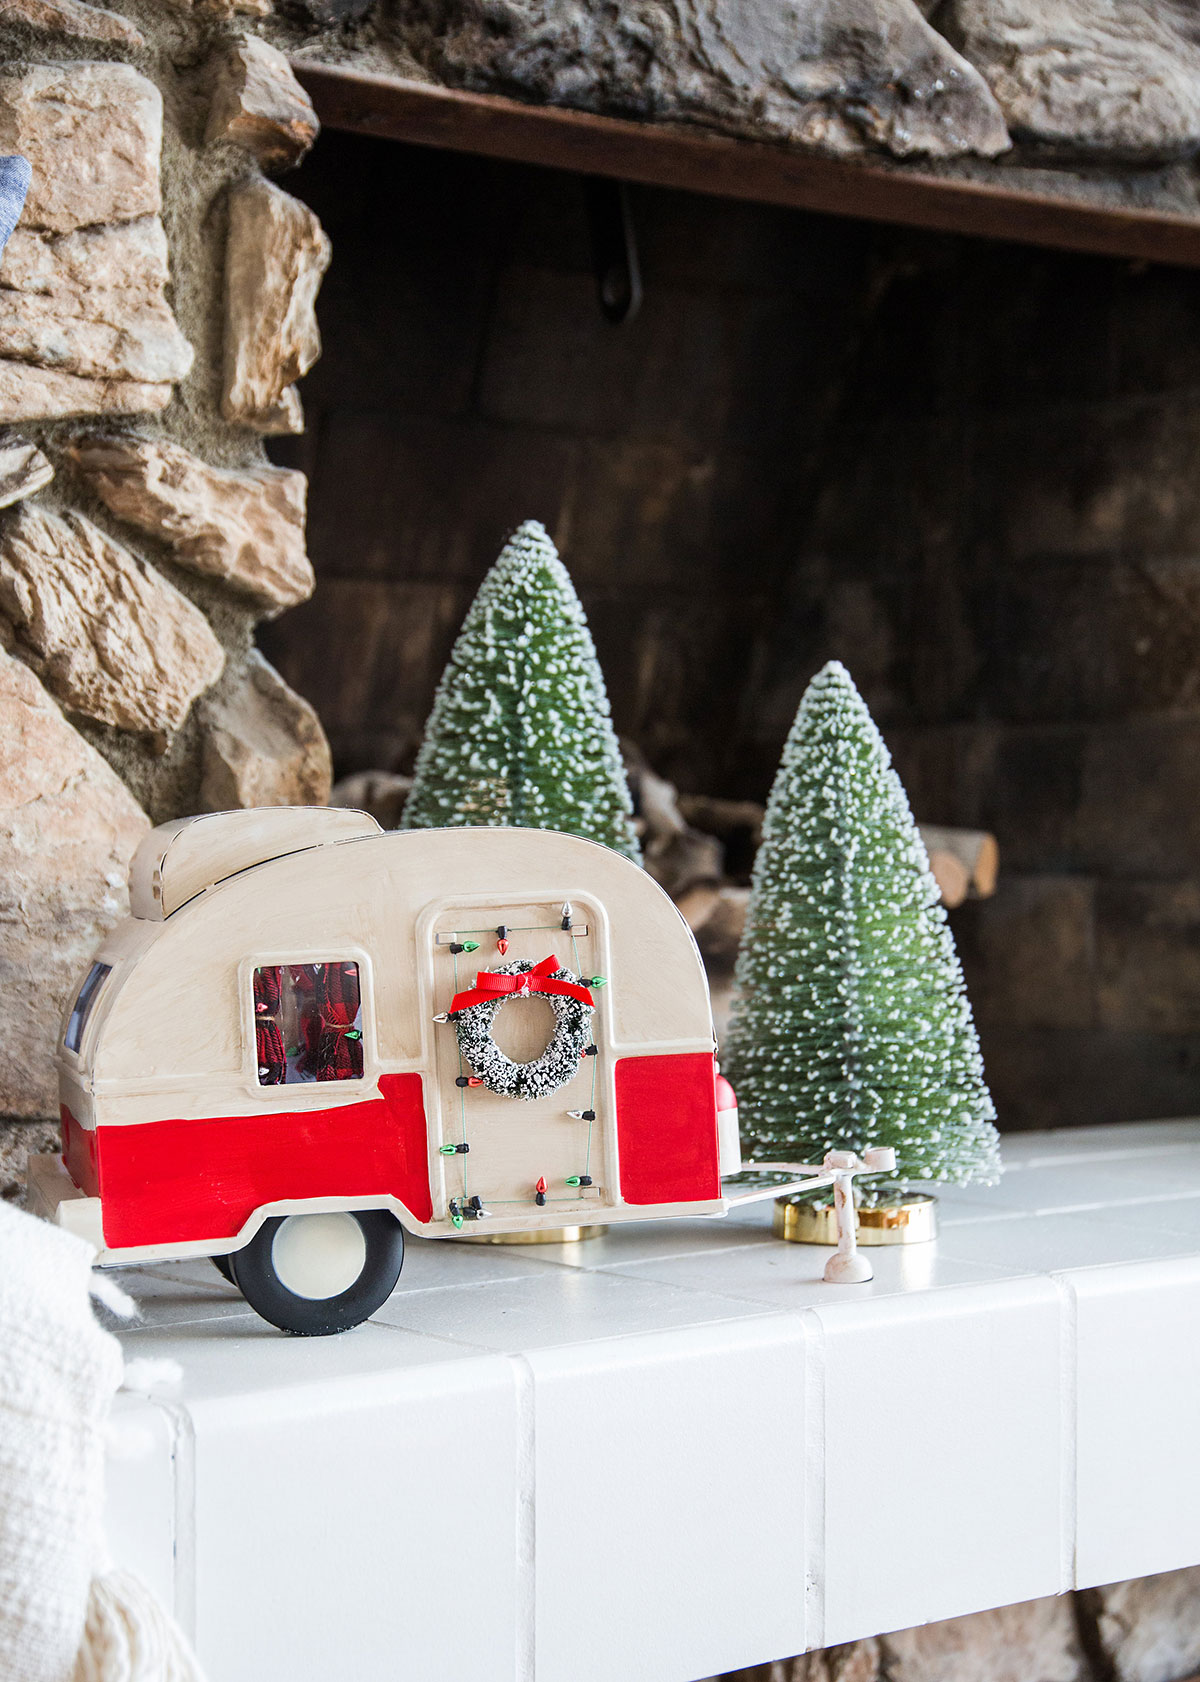 Camper Van Christmas Decor